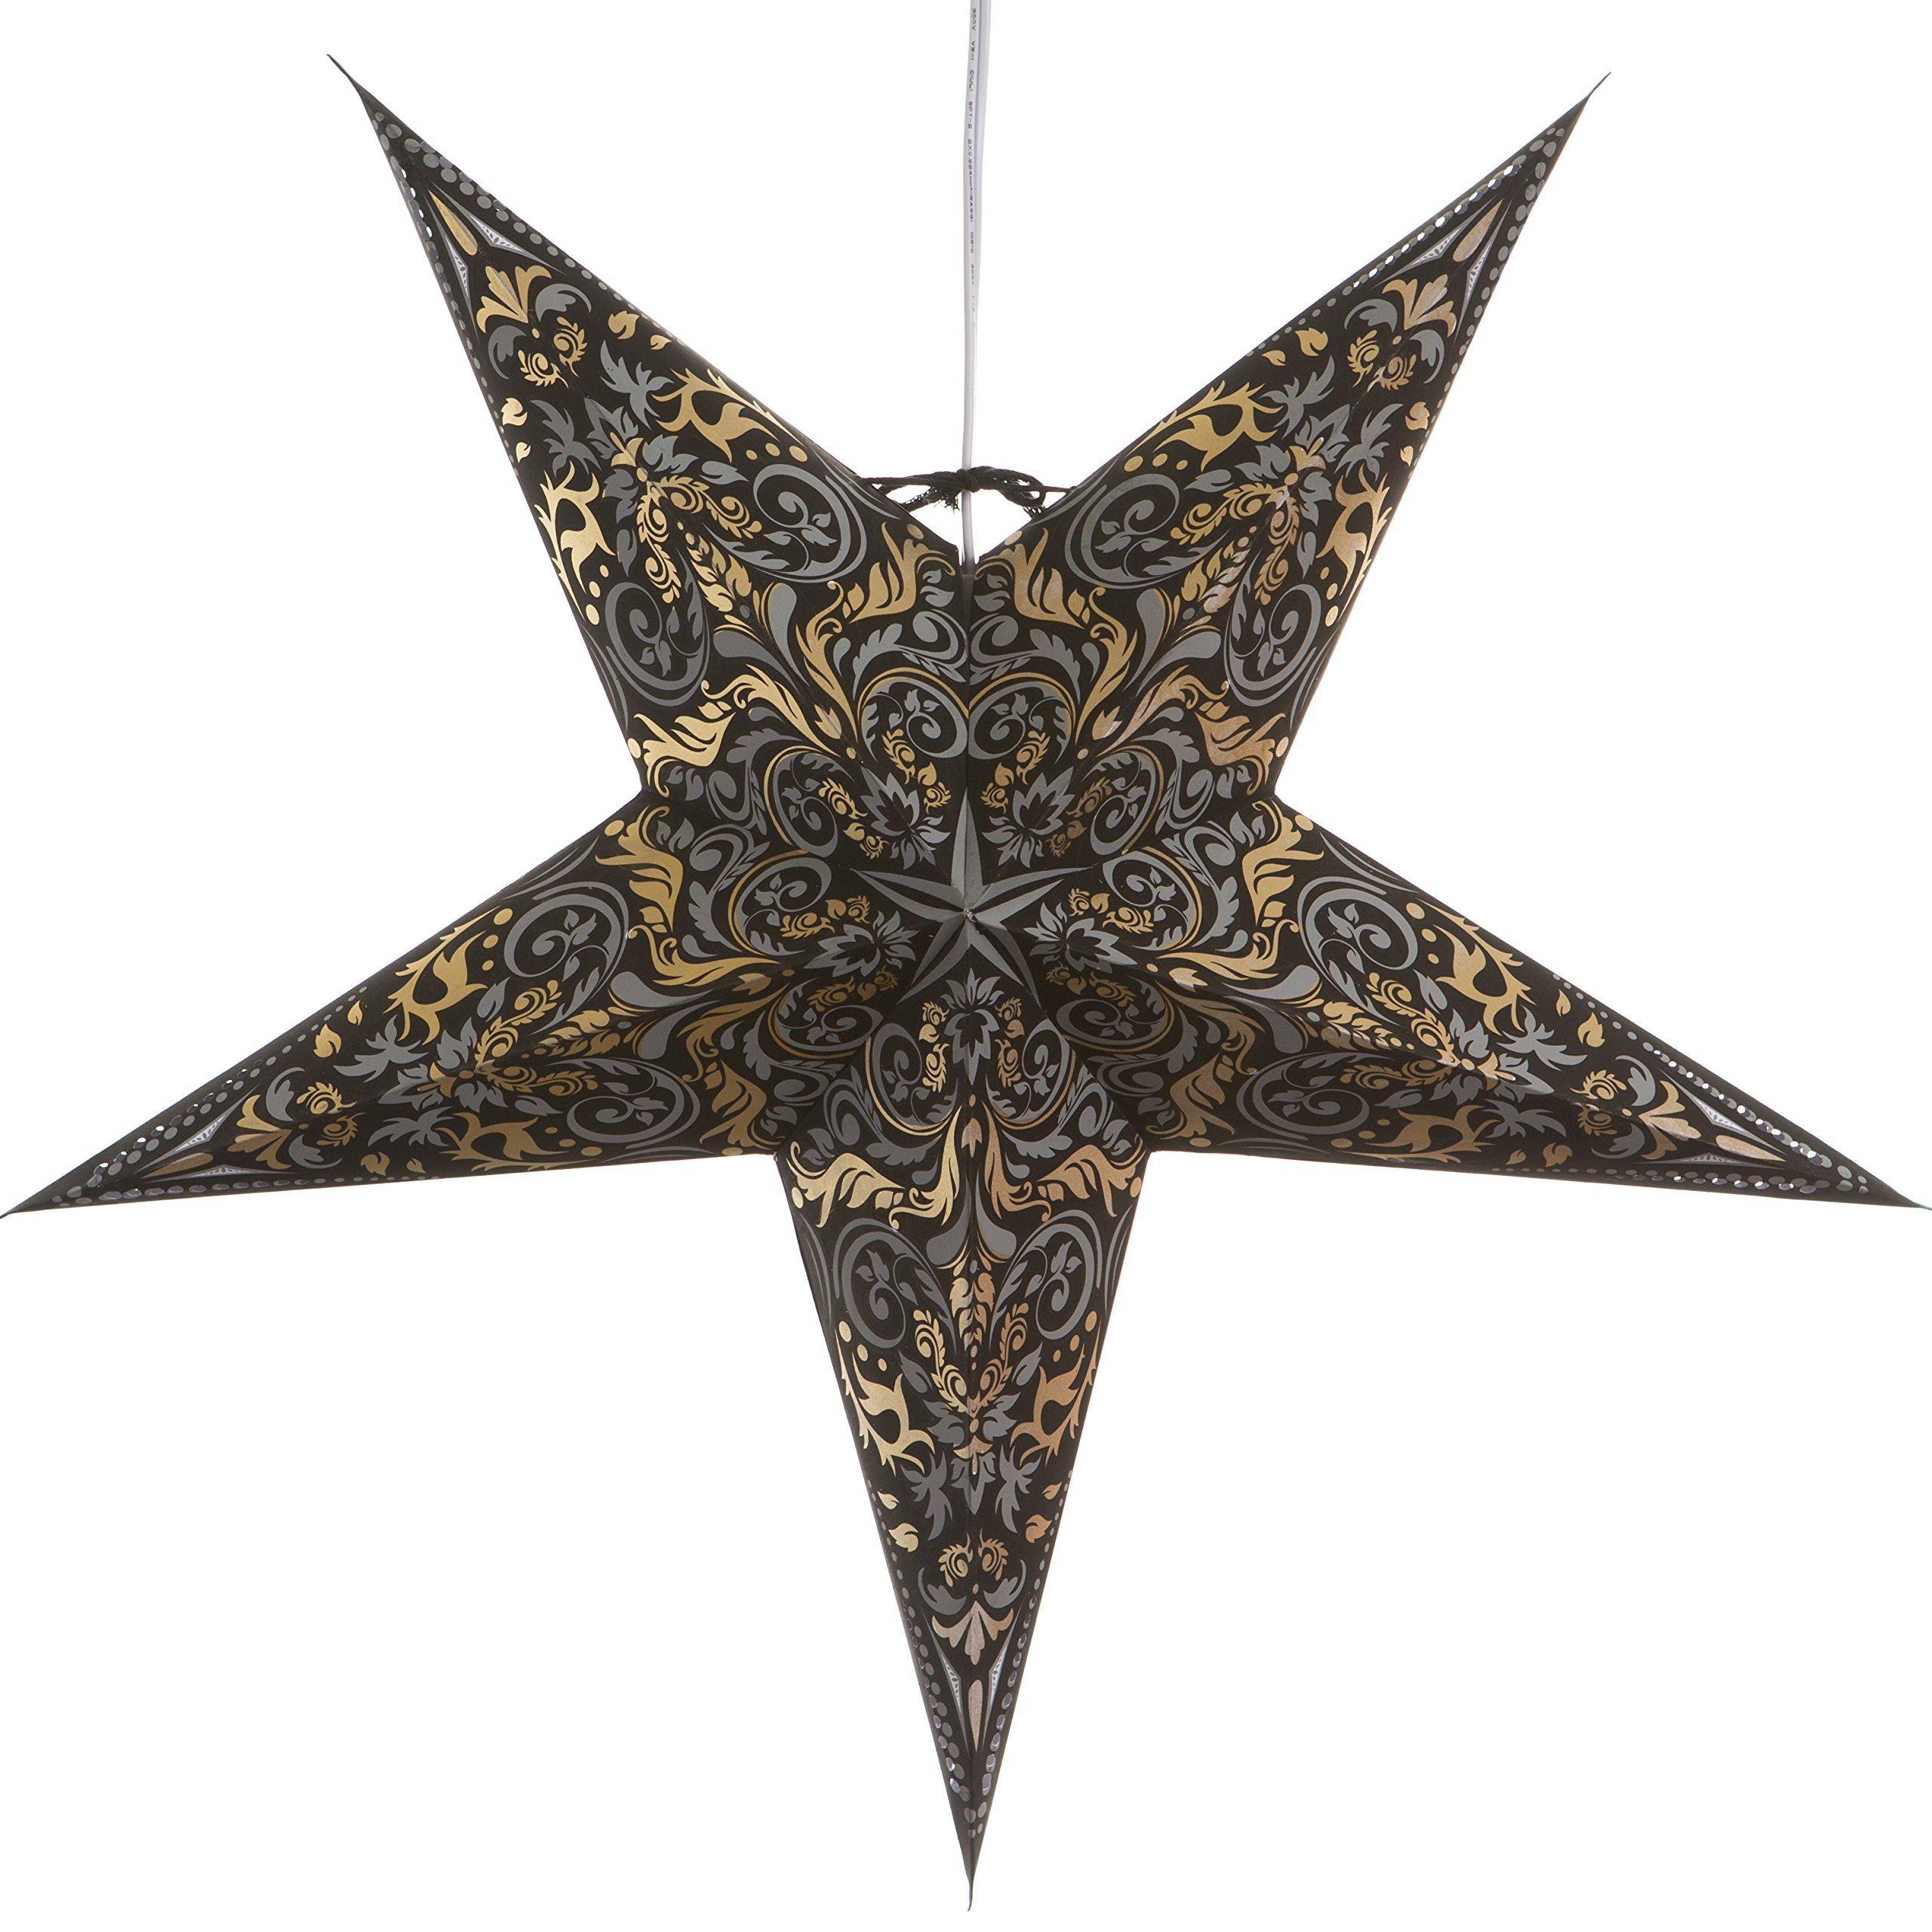 Fleur de Lis Black Paper Star Lantern with 12 Foot Power Cord Included